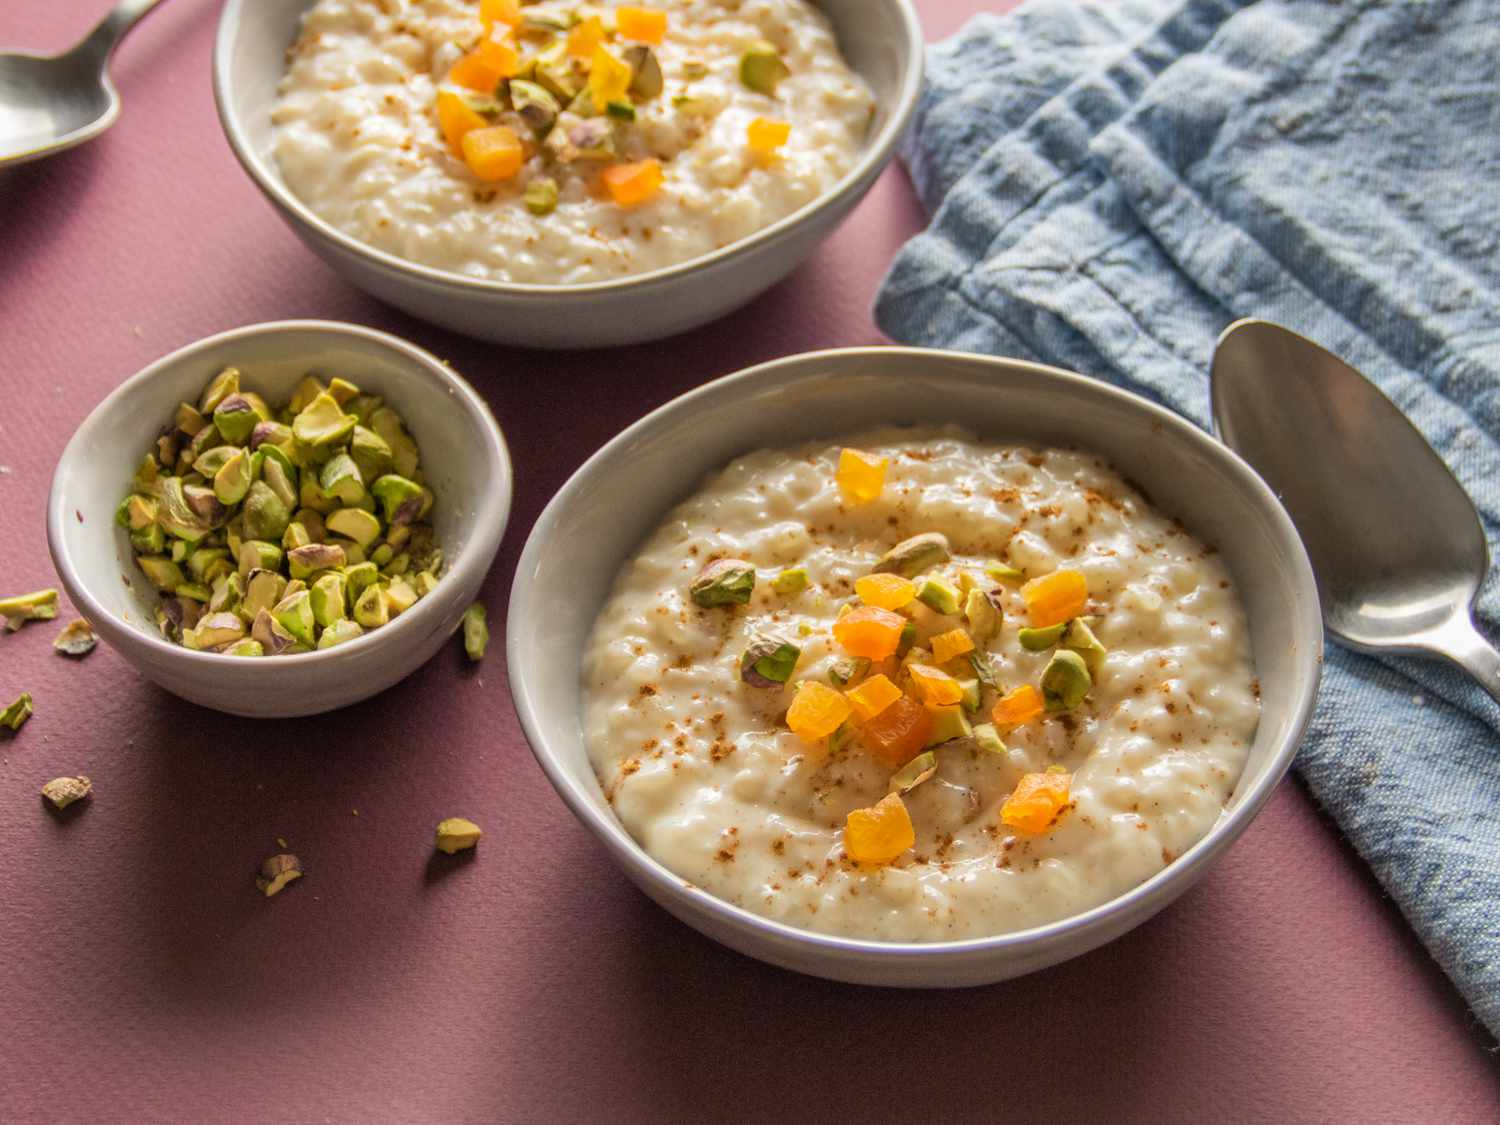 side angle of rice pudding in bowls topped with dried apricot and pistachios